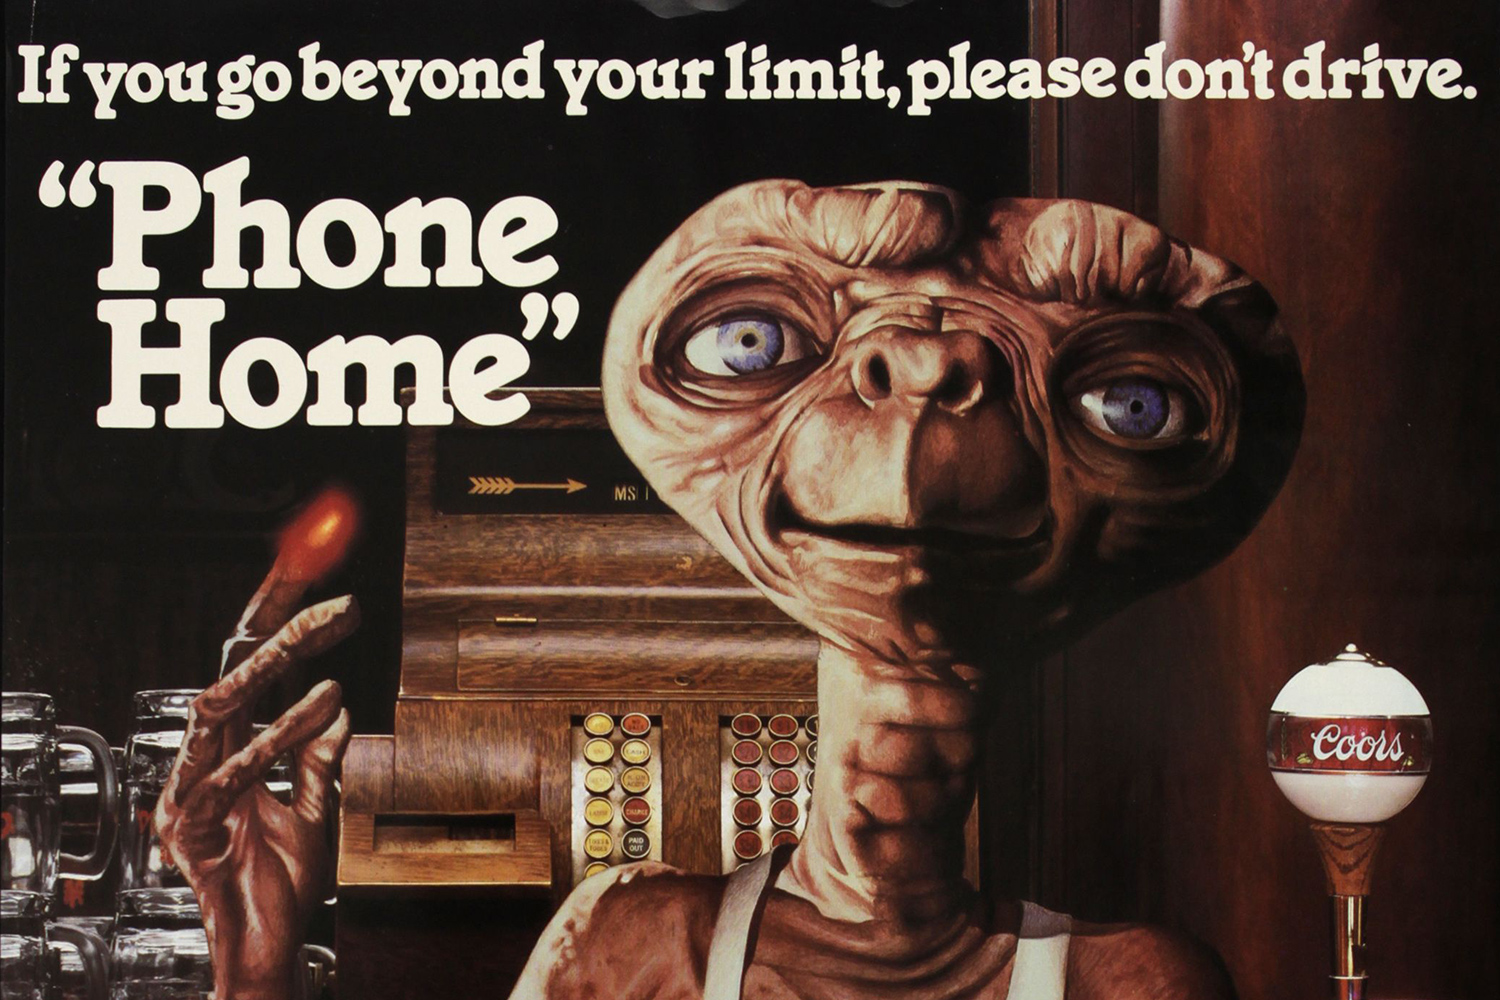 E.T. the Extra-Terrestrial /Coors cross-promotional public service announcement poster